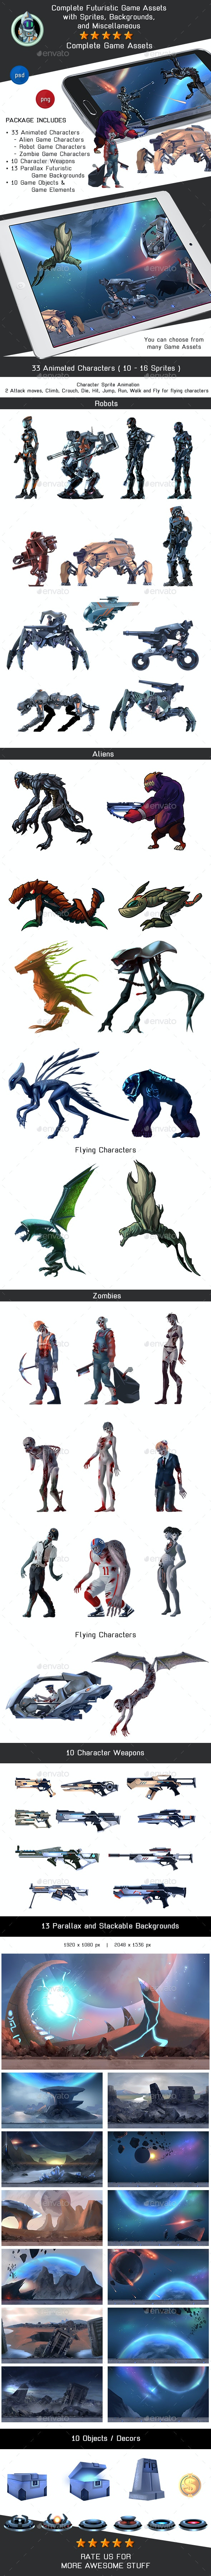 Complete Futuristic Game Assets Pack - Aliens, Robots & Zombies - Game Kits Game Assets